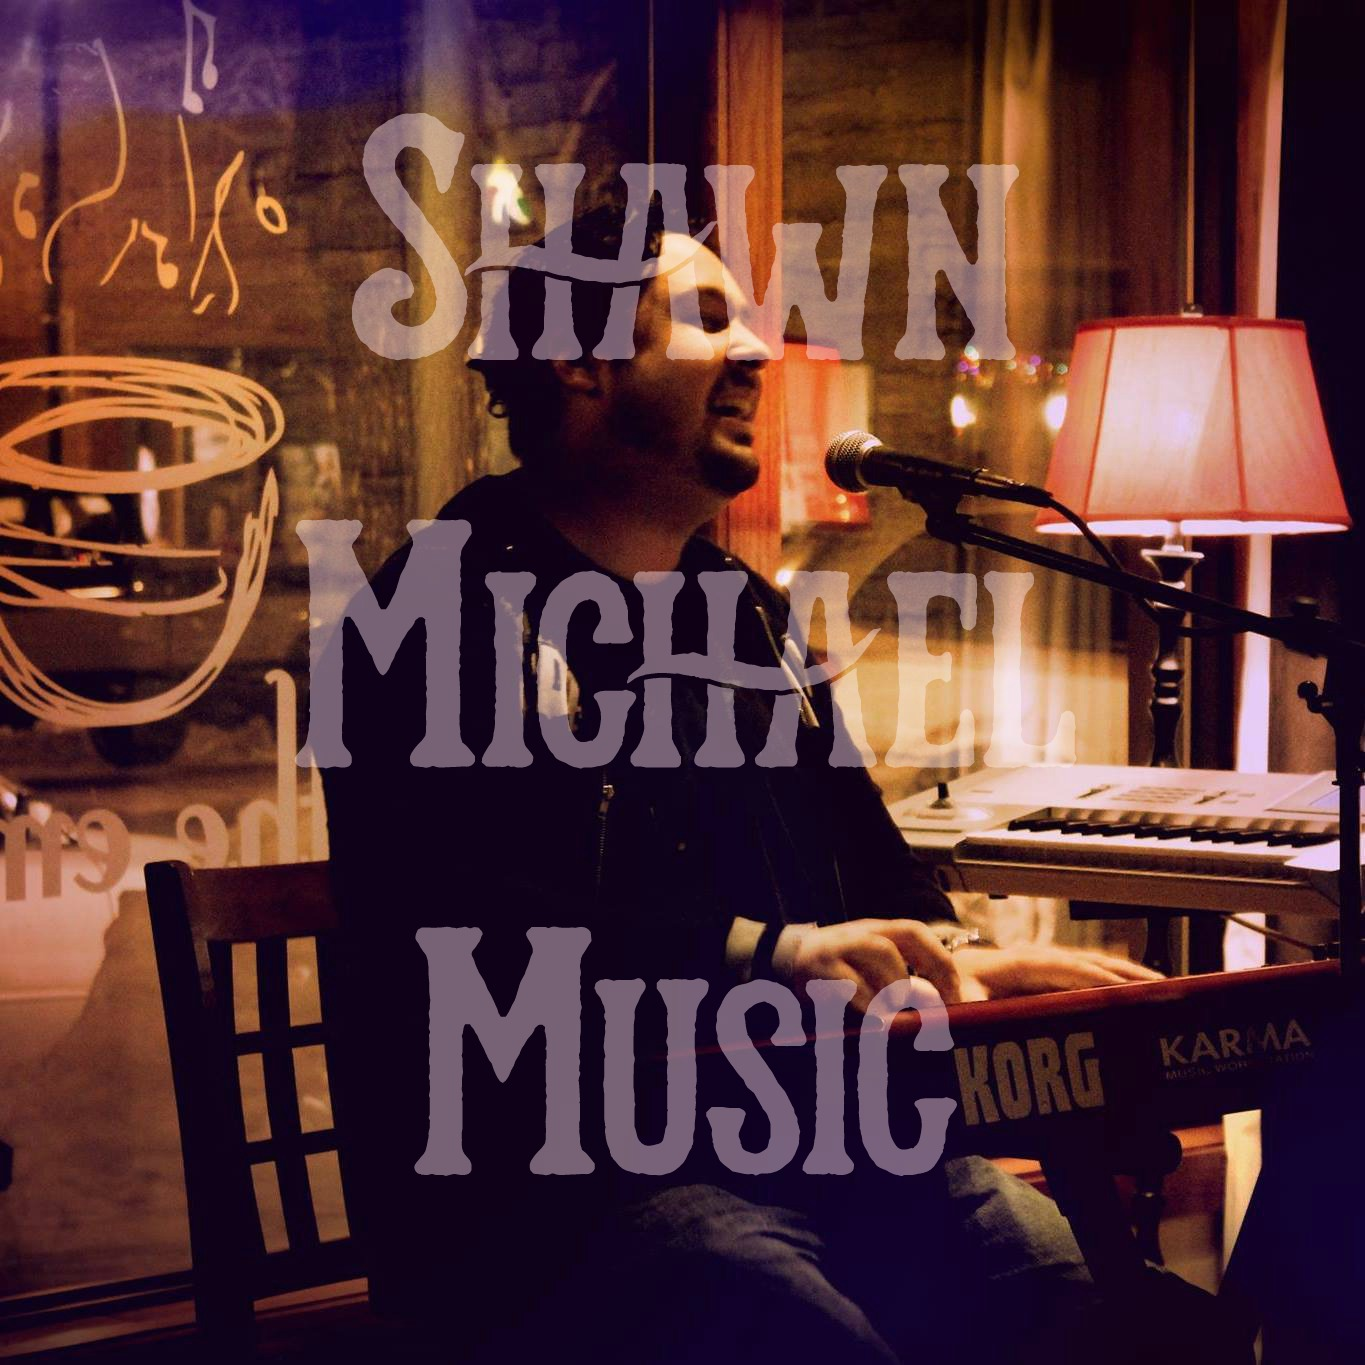 Shawn Michael Music